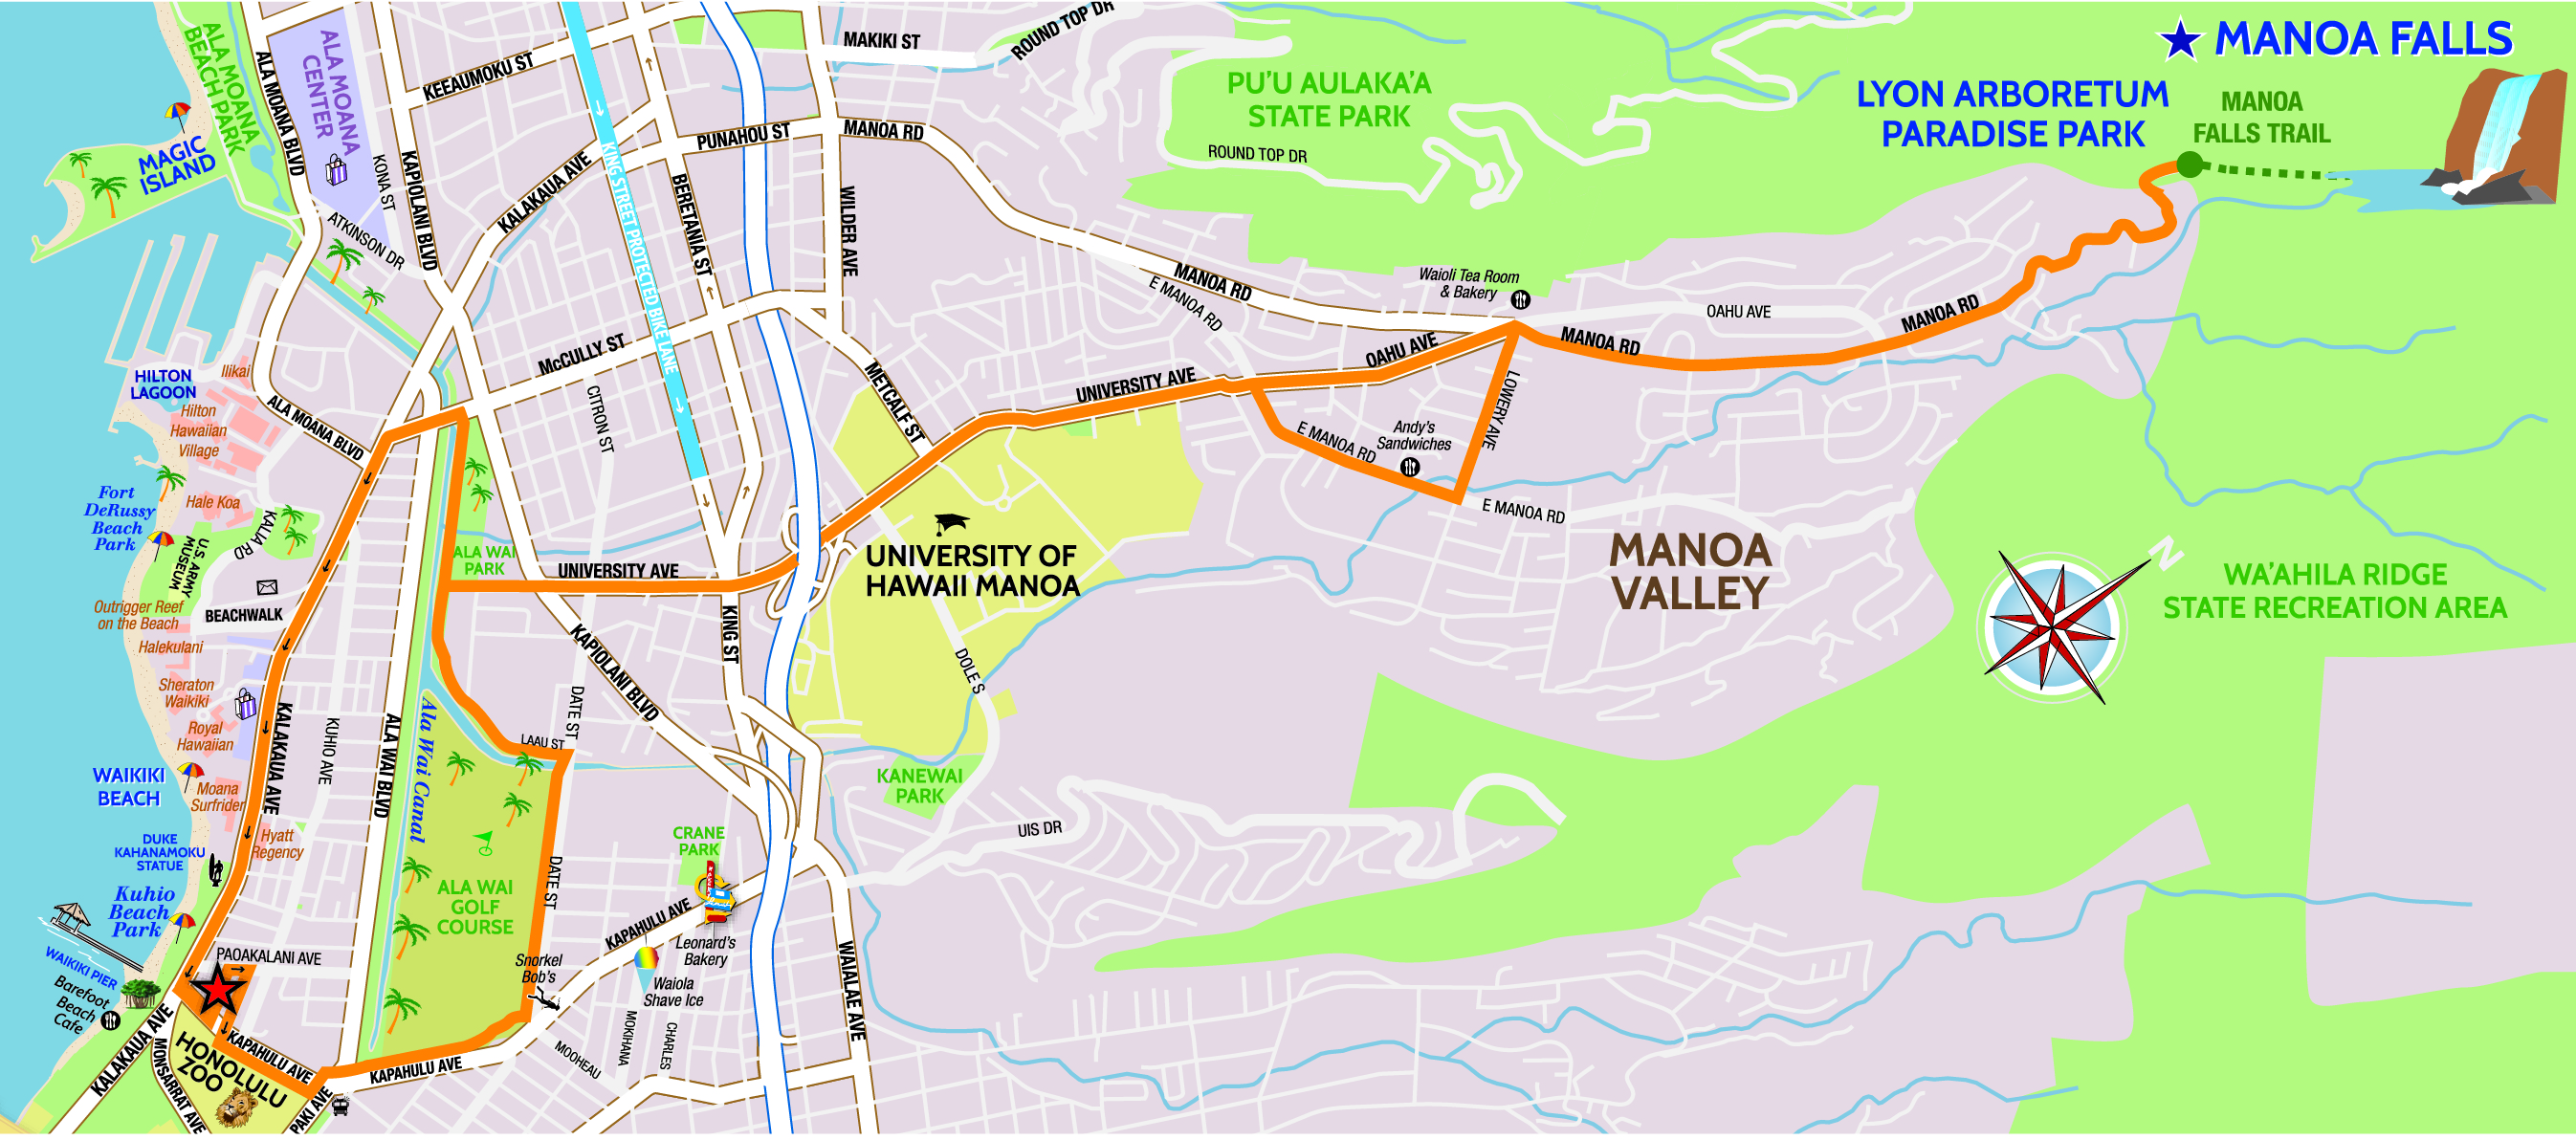 manoa-falls-map